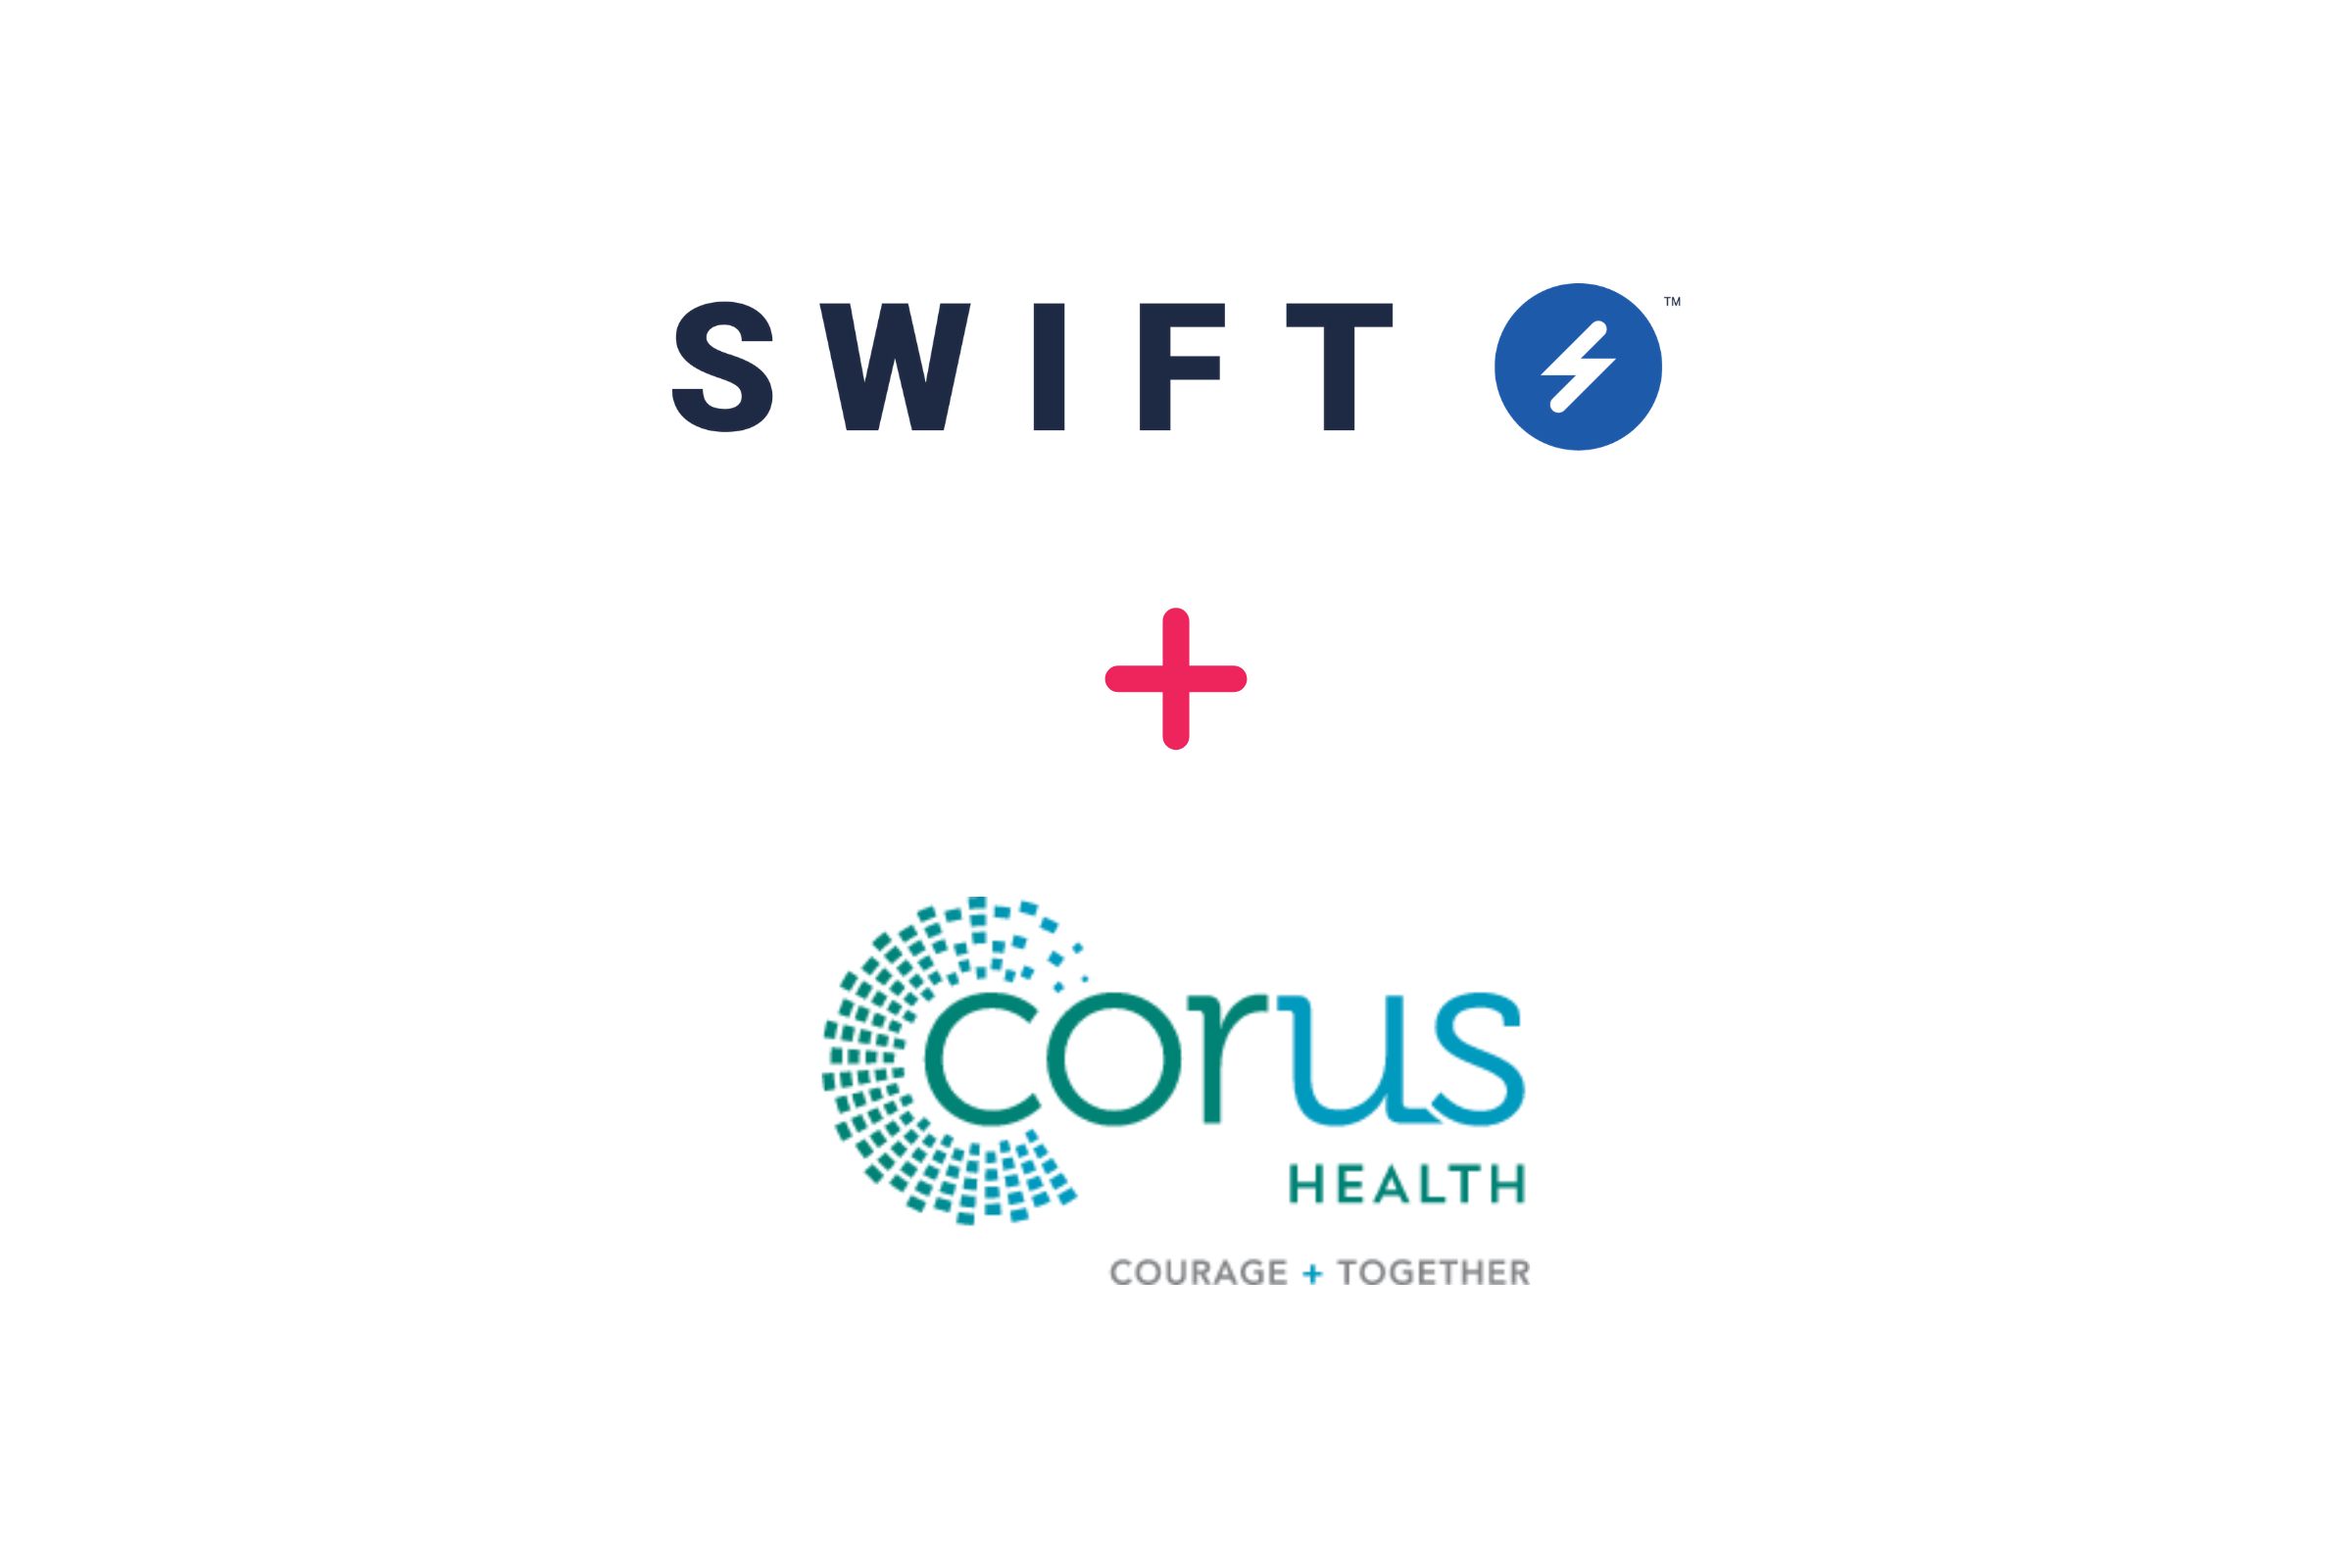 Swift Medical plus Corus Health logos